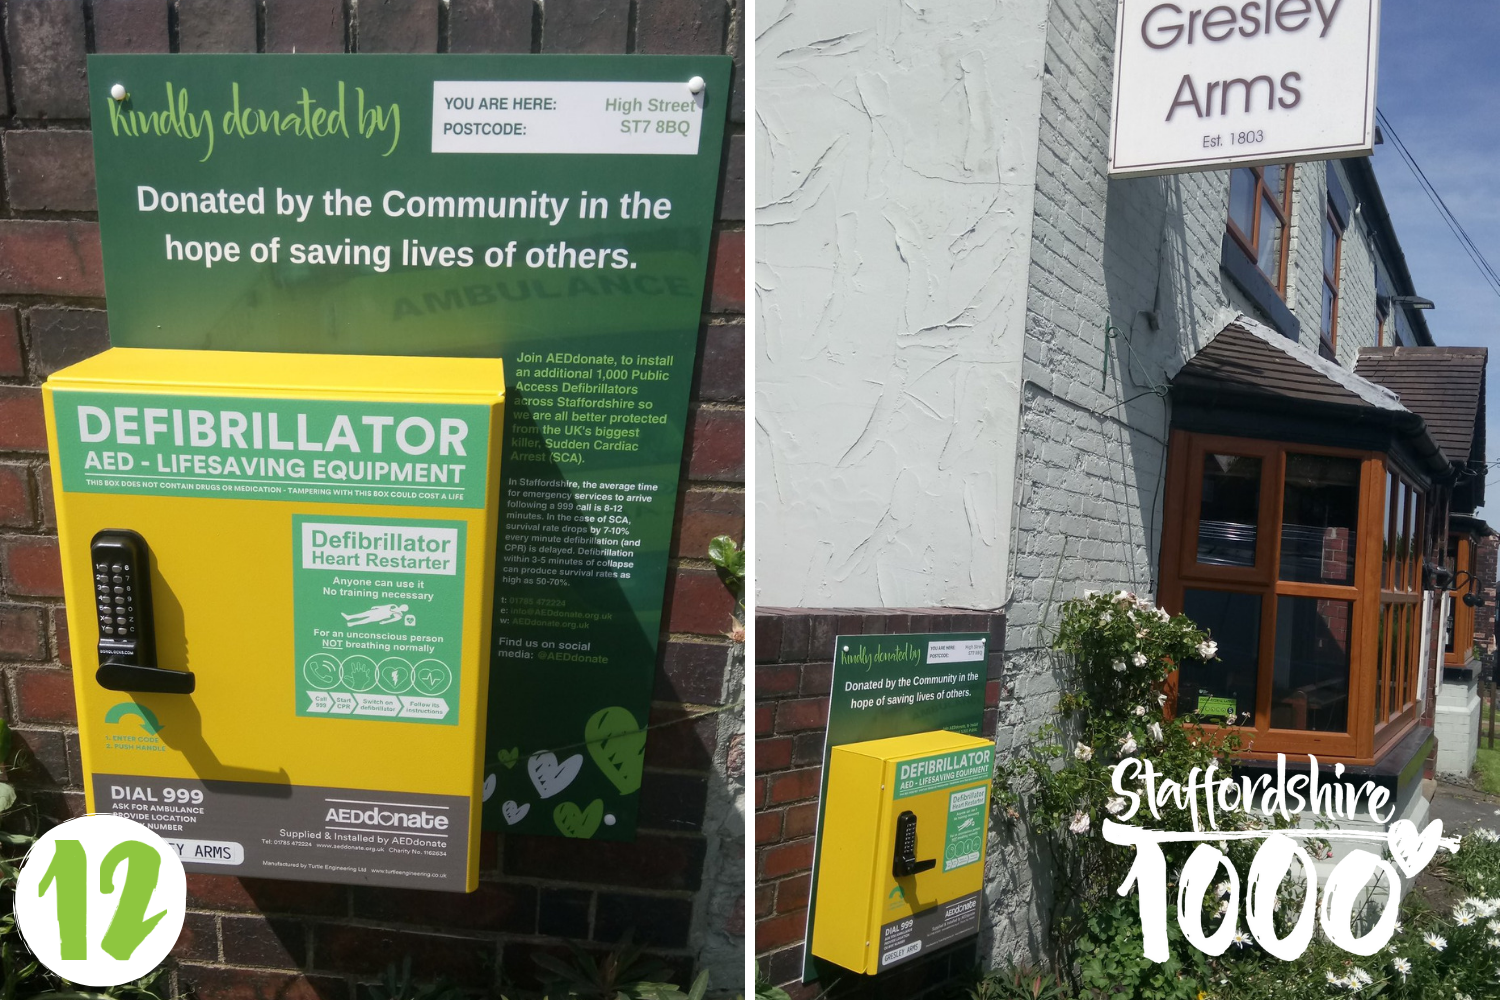 Defibrillator installed at The Gresley Arms